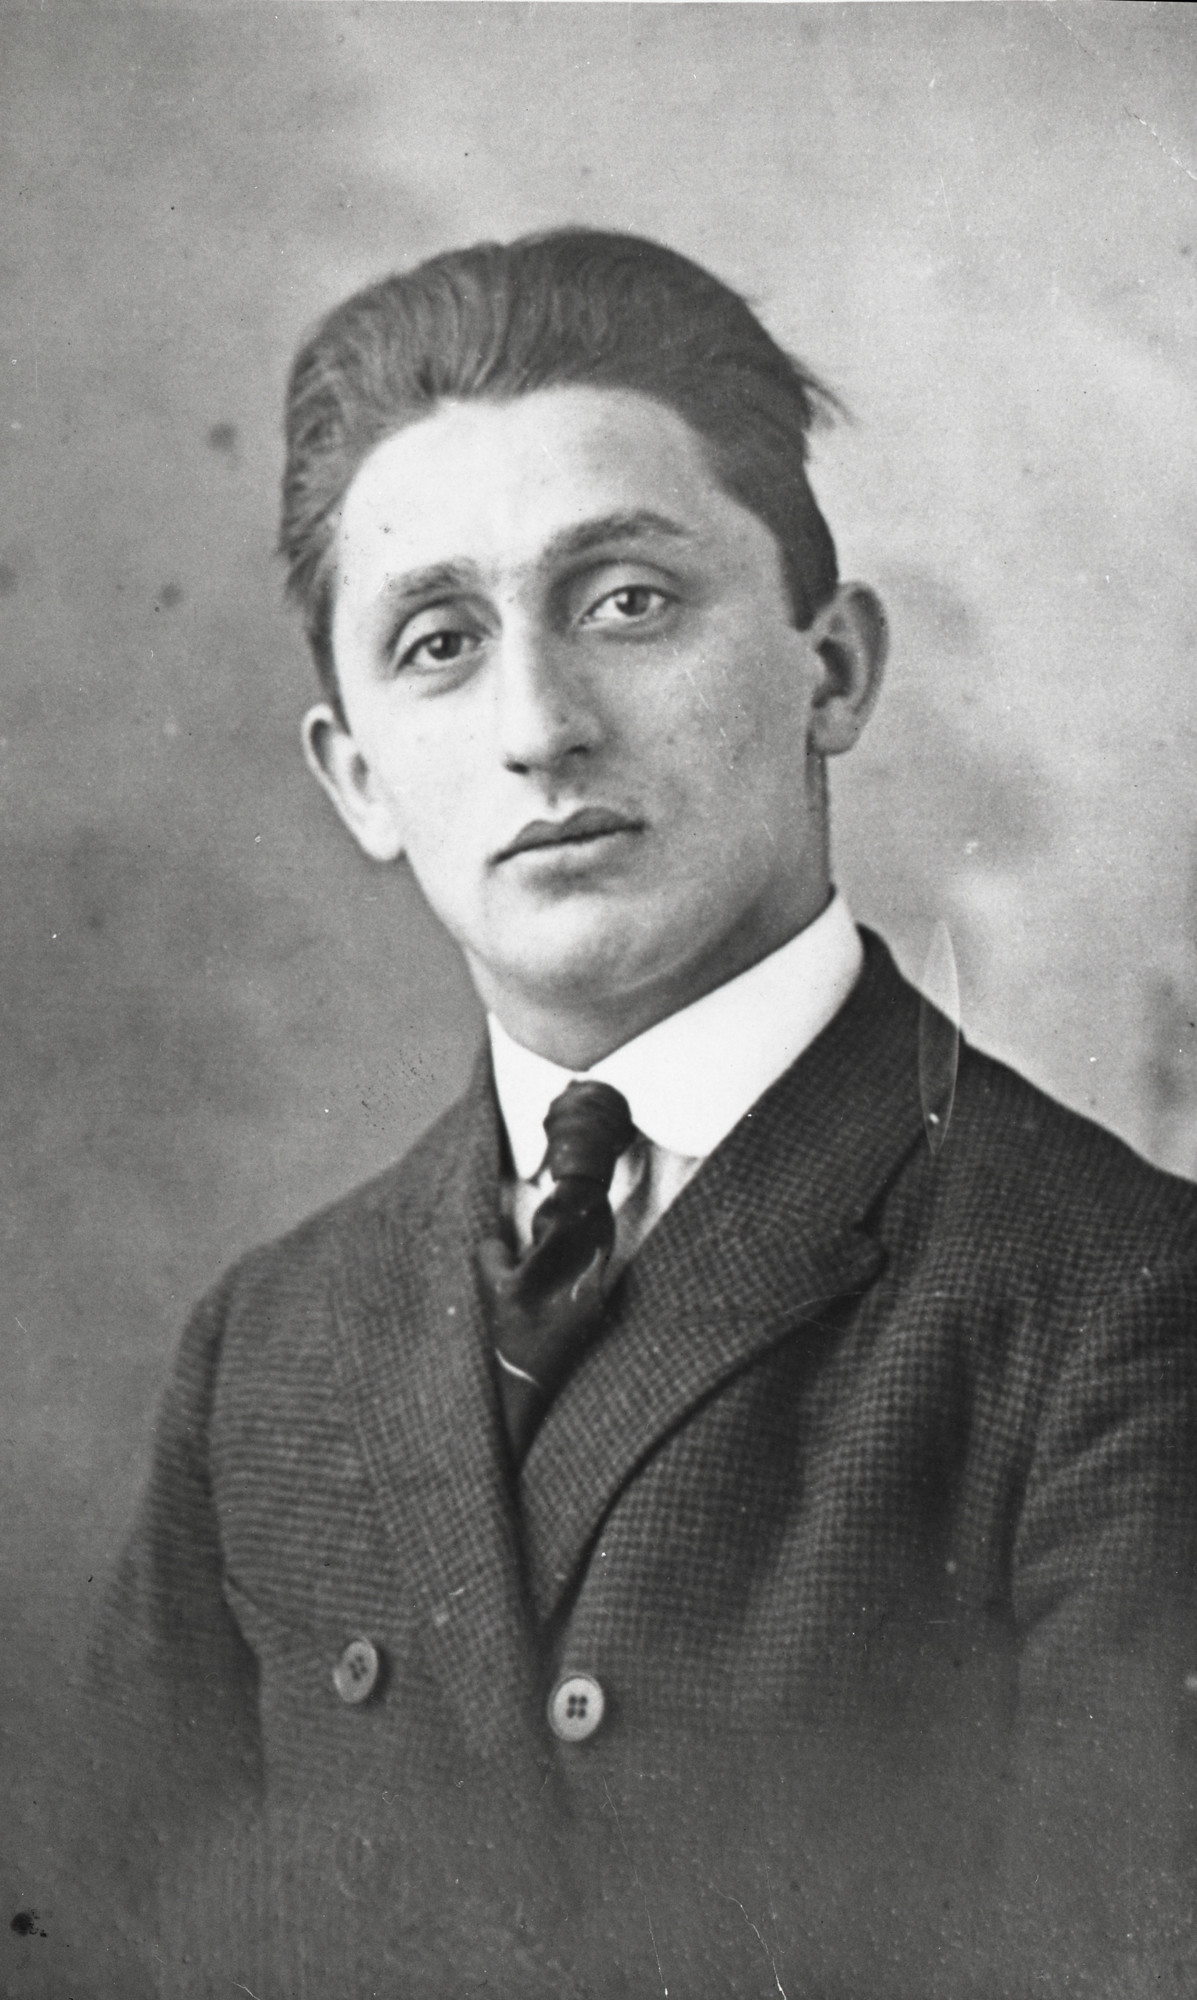 Portrait of Isaac Stopper.  Isaac perished in Auschwitz on May 31, 1944.